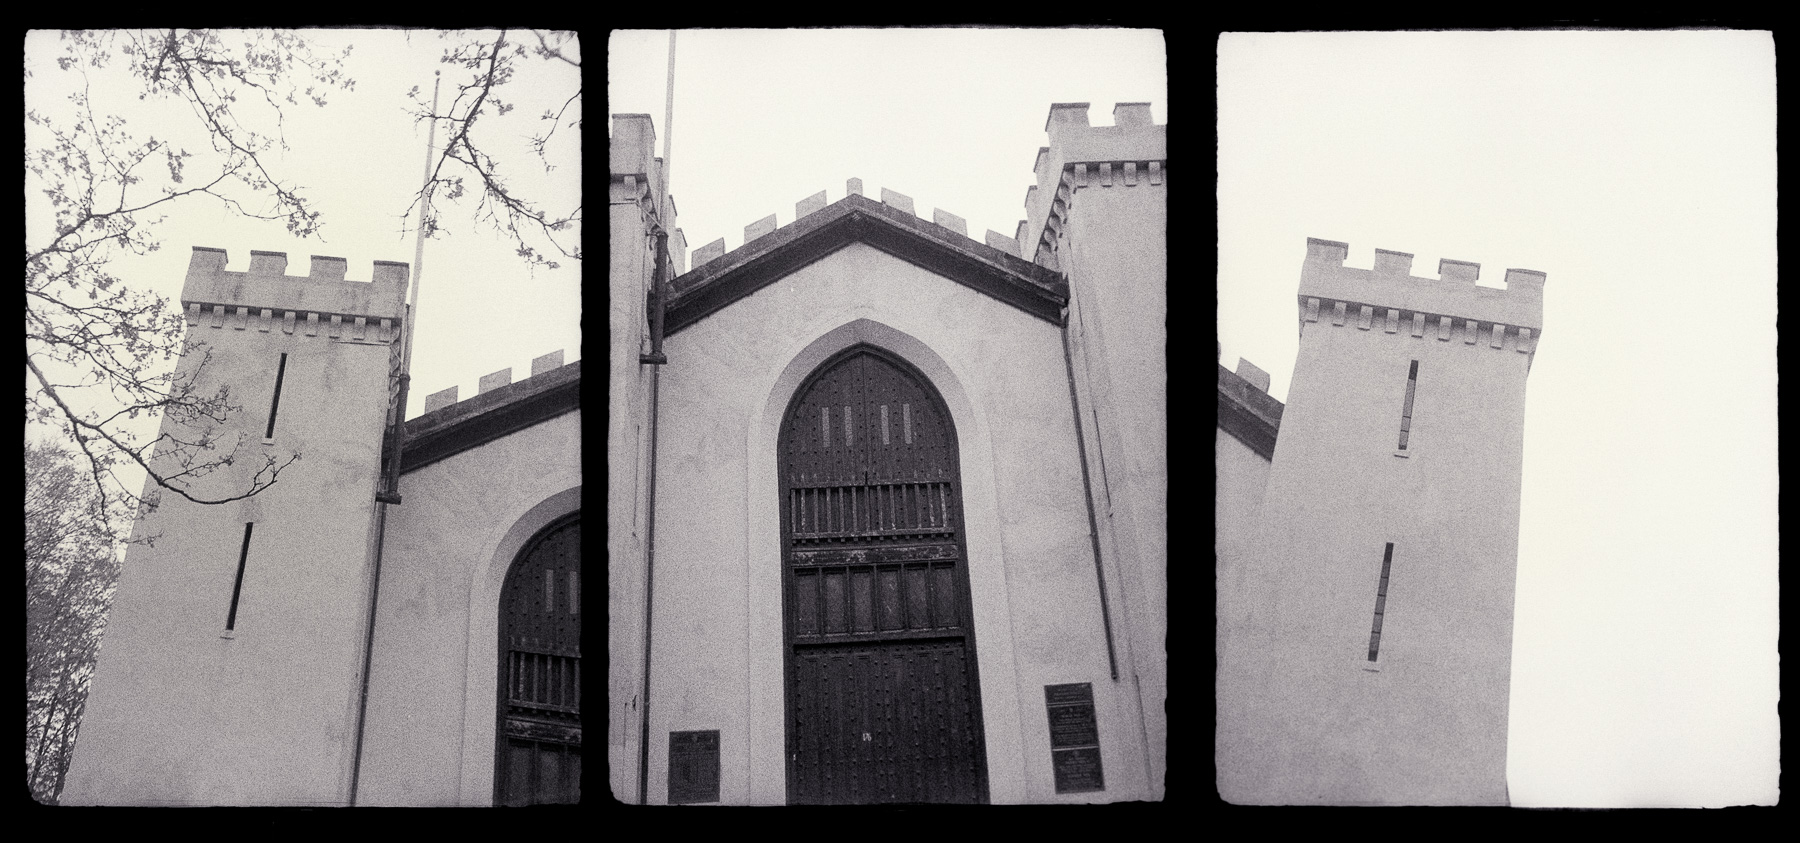 "This is the Benefit St. Armory in Providence photographed with a Chaika half-frame camera. This is the building that I like to point out to anyone who will listen that was moved in 1906 (rolled on logs, mind you) to its present location in order to make way for the east side railroad tunnel, which lies a couple hundred yards to the south. The west portal of this tunnel was the site of the May Day ""riot"" in 1993, where some student partying got out of hand. This lead to the tunnel being sealed up. May Day became associated with the Communists in the 20th Century. Now that area is a parking lot. So it all comes together. Sort of."